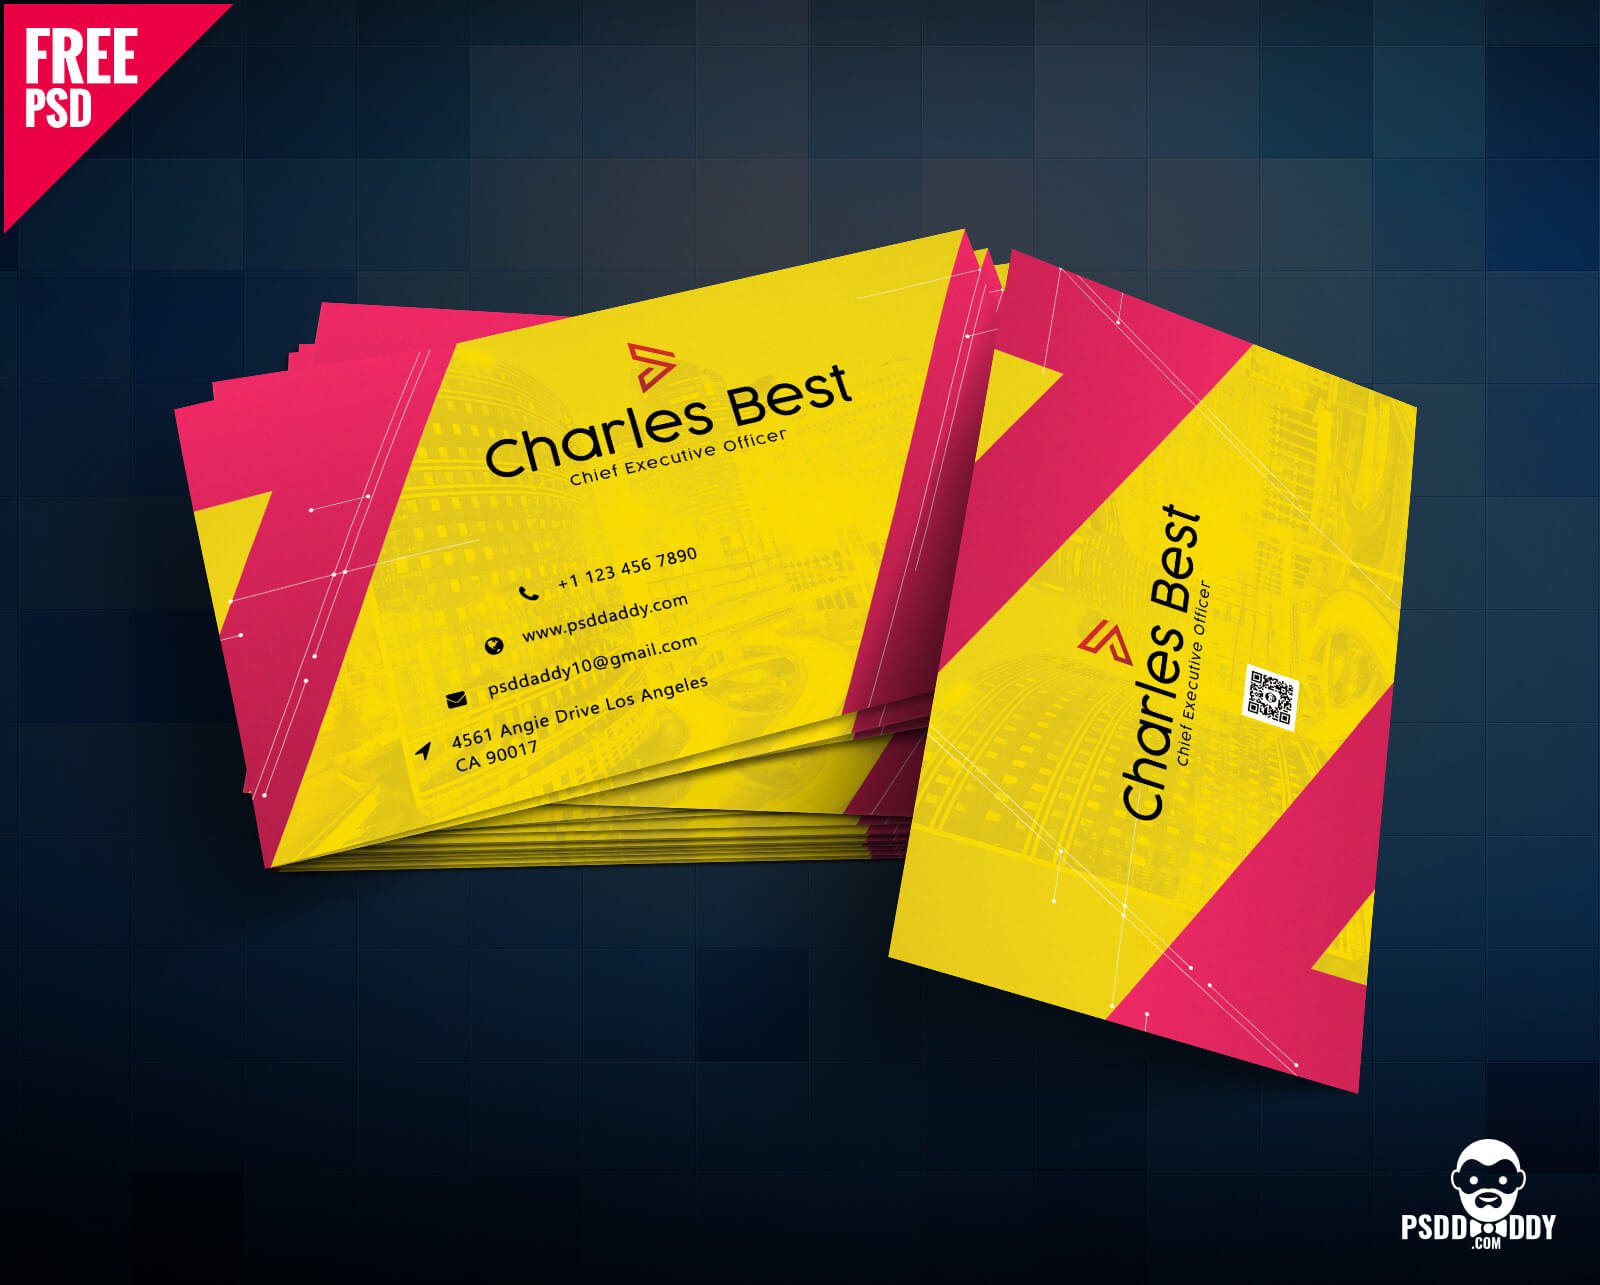 Download] Creative Business Card Free Psd   Psddaddy For Name Card Design Template Psd